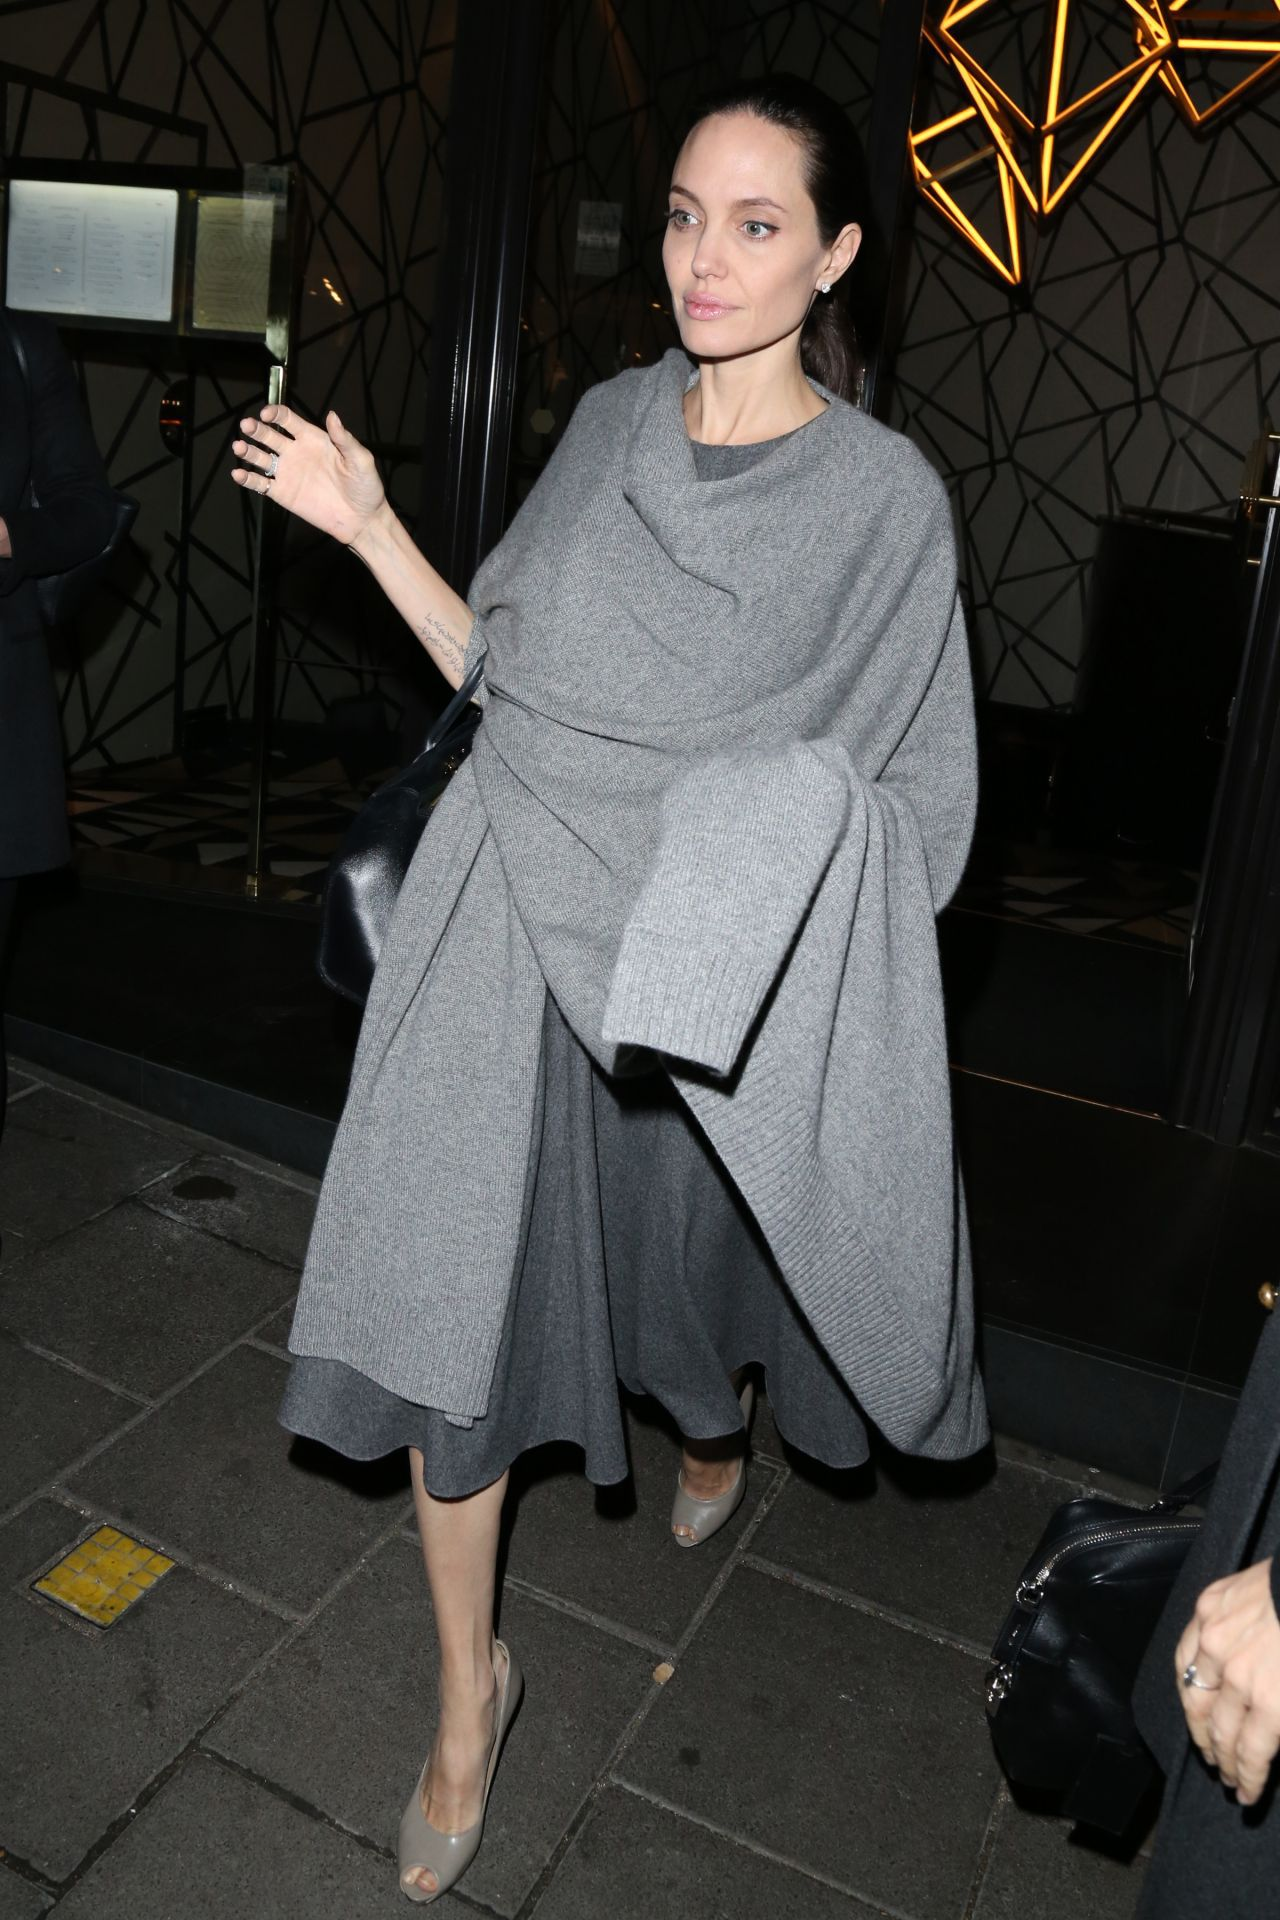 angelina-jolie-night-out-style-leaving-quaglino-s-restaurant-in-mayfair-in-london-4-26-2016-2